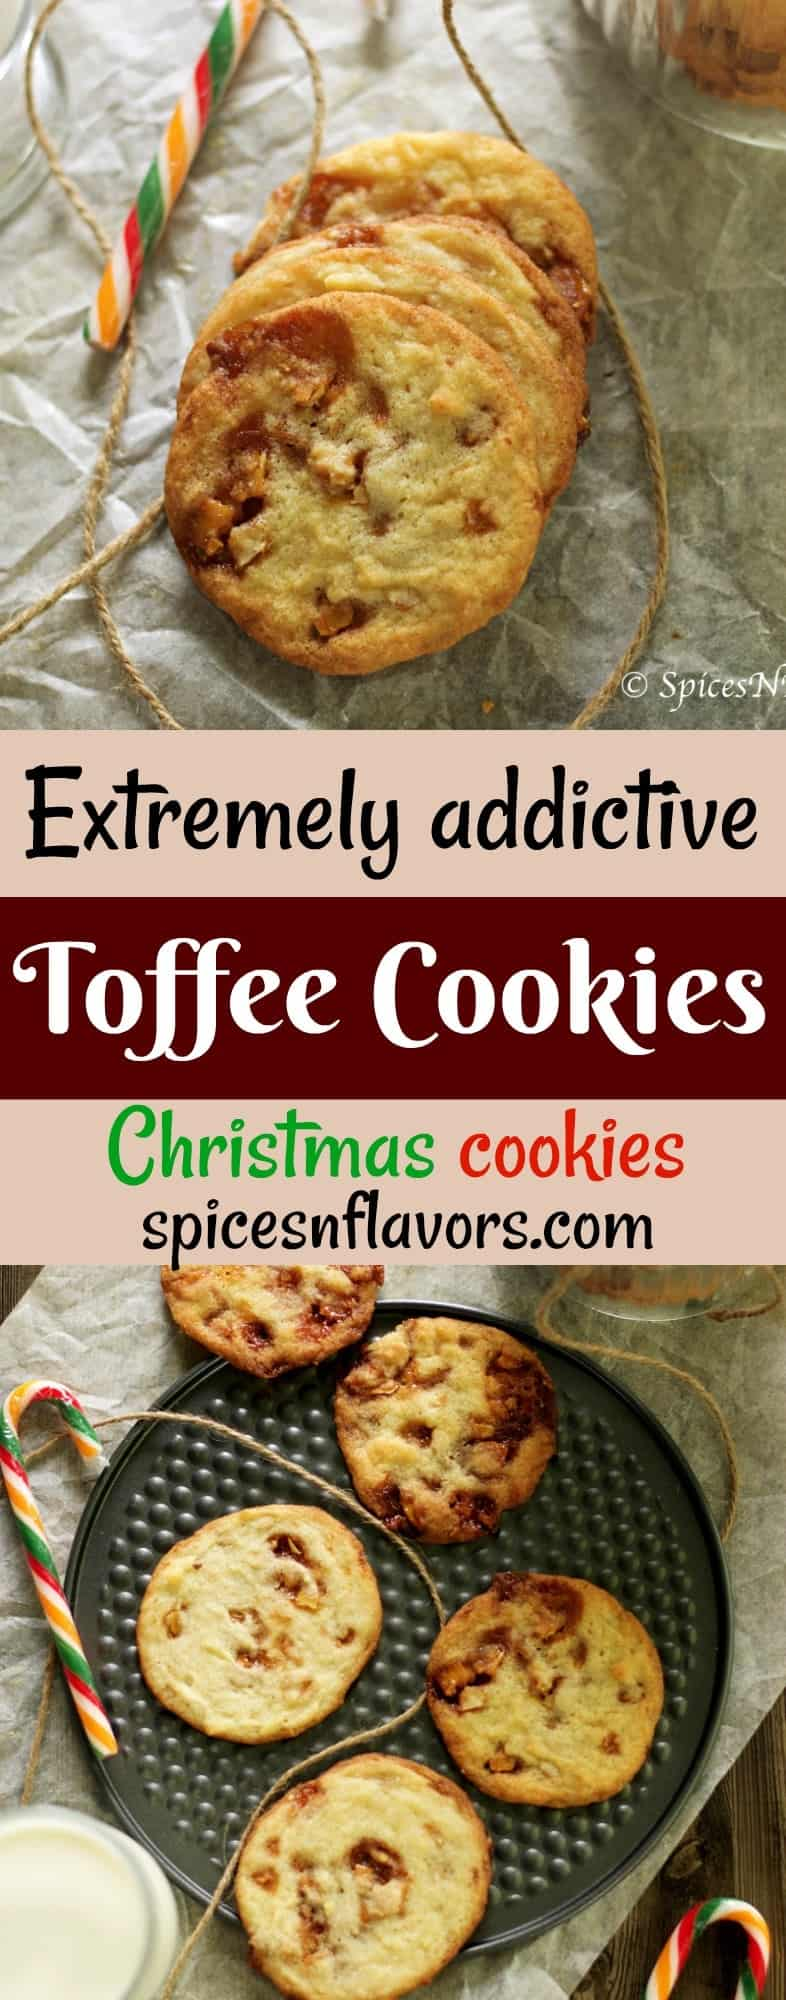 pin image of toffee cookies